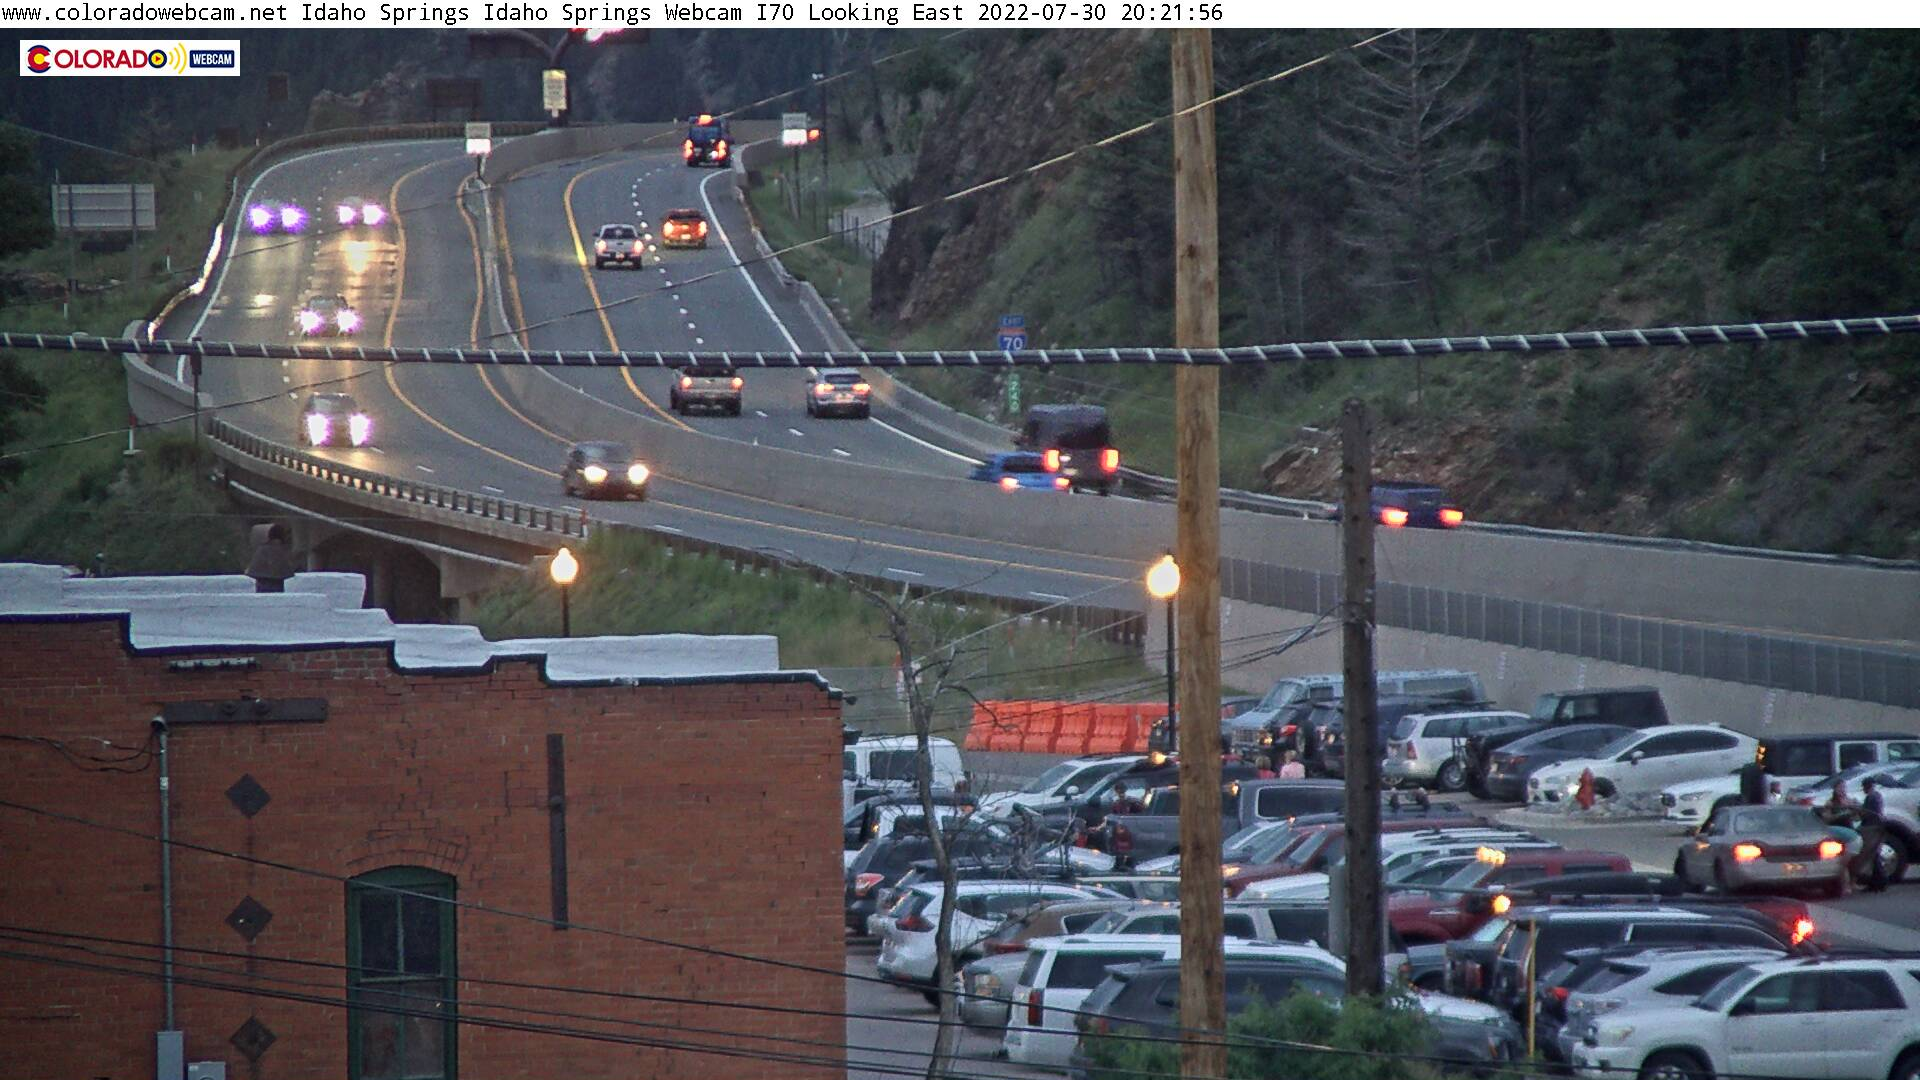 Idaho Springs Webcam Clear Creek I70 City Hall | ColoradoWebCam Net